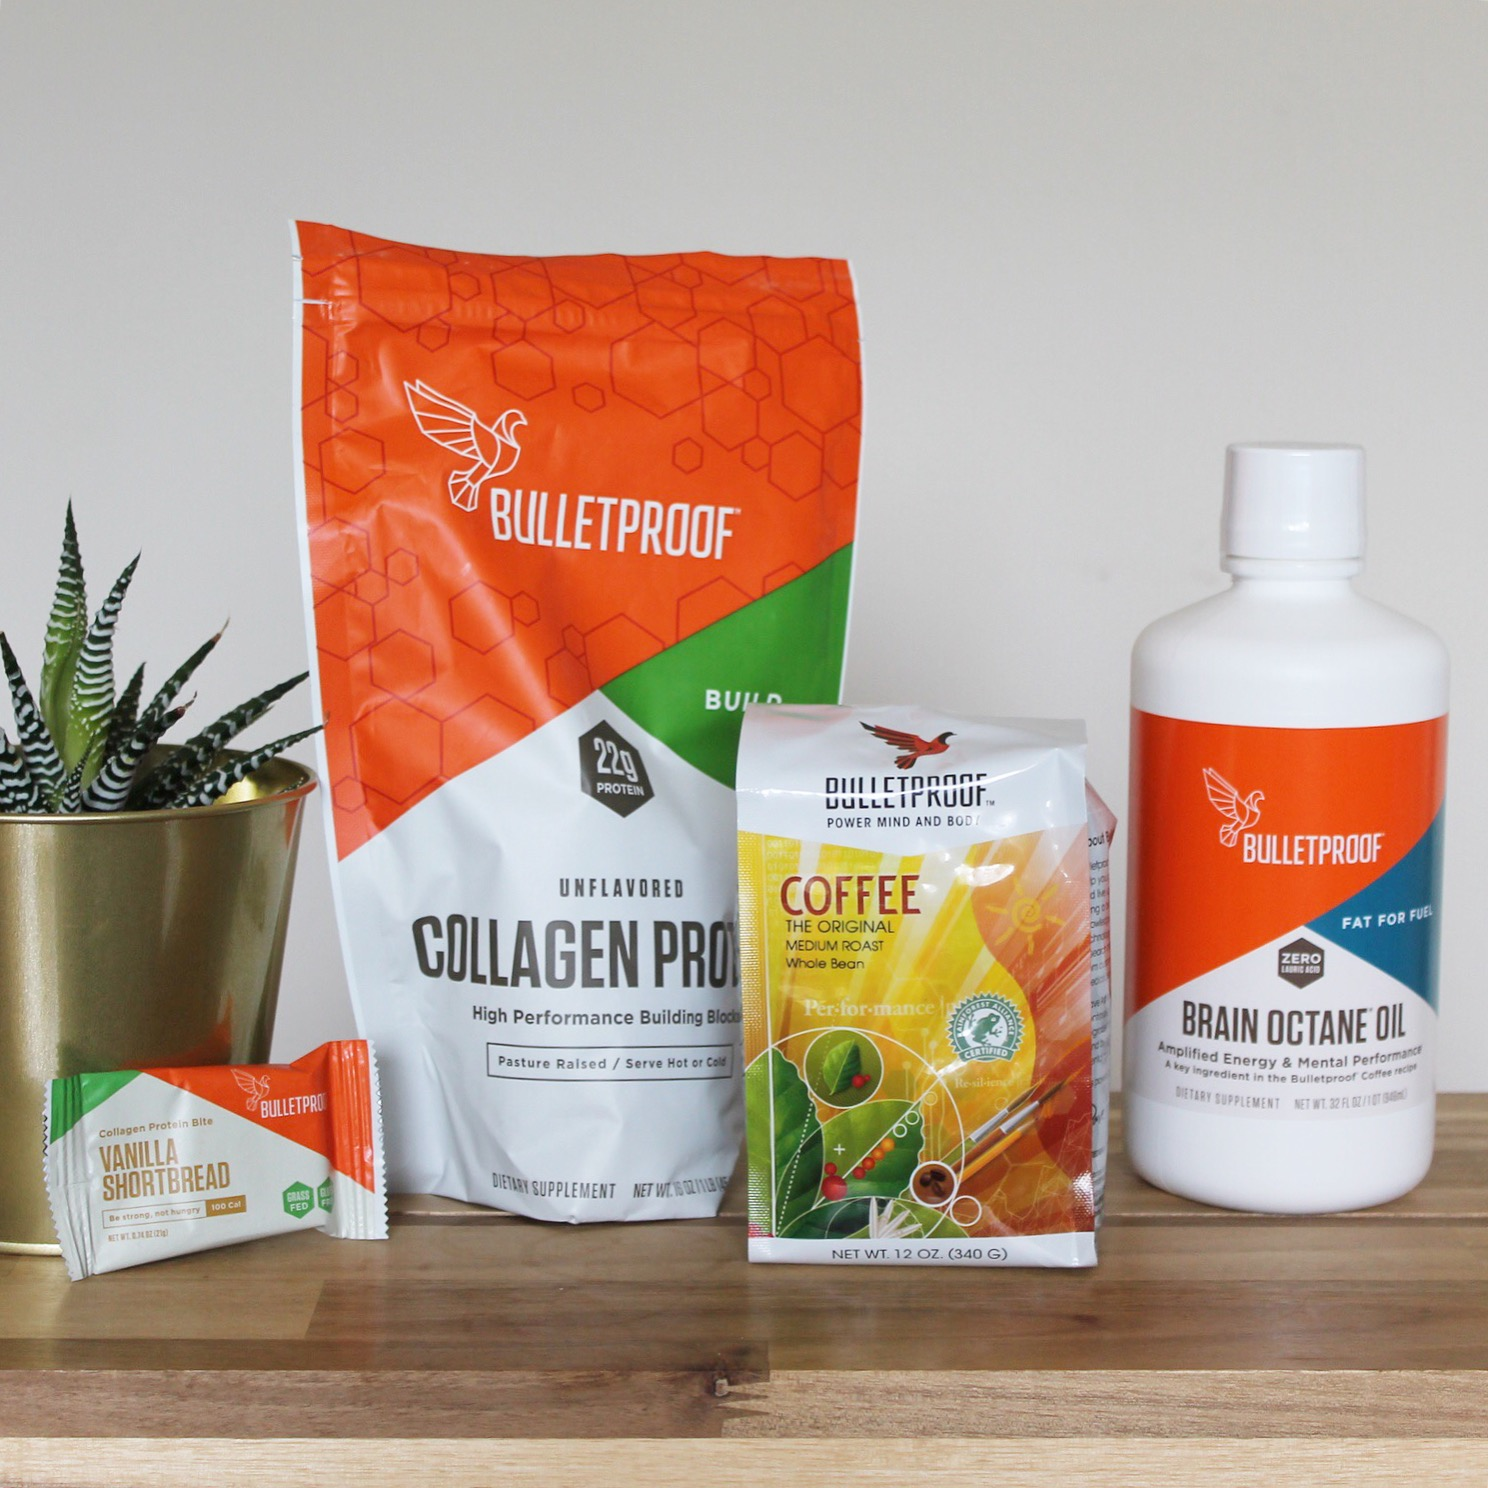 Bulletproof products are on sale